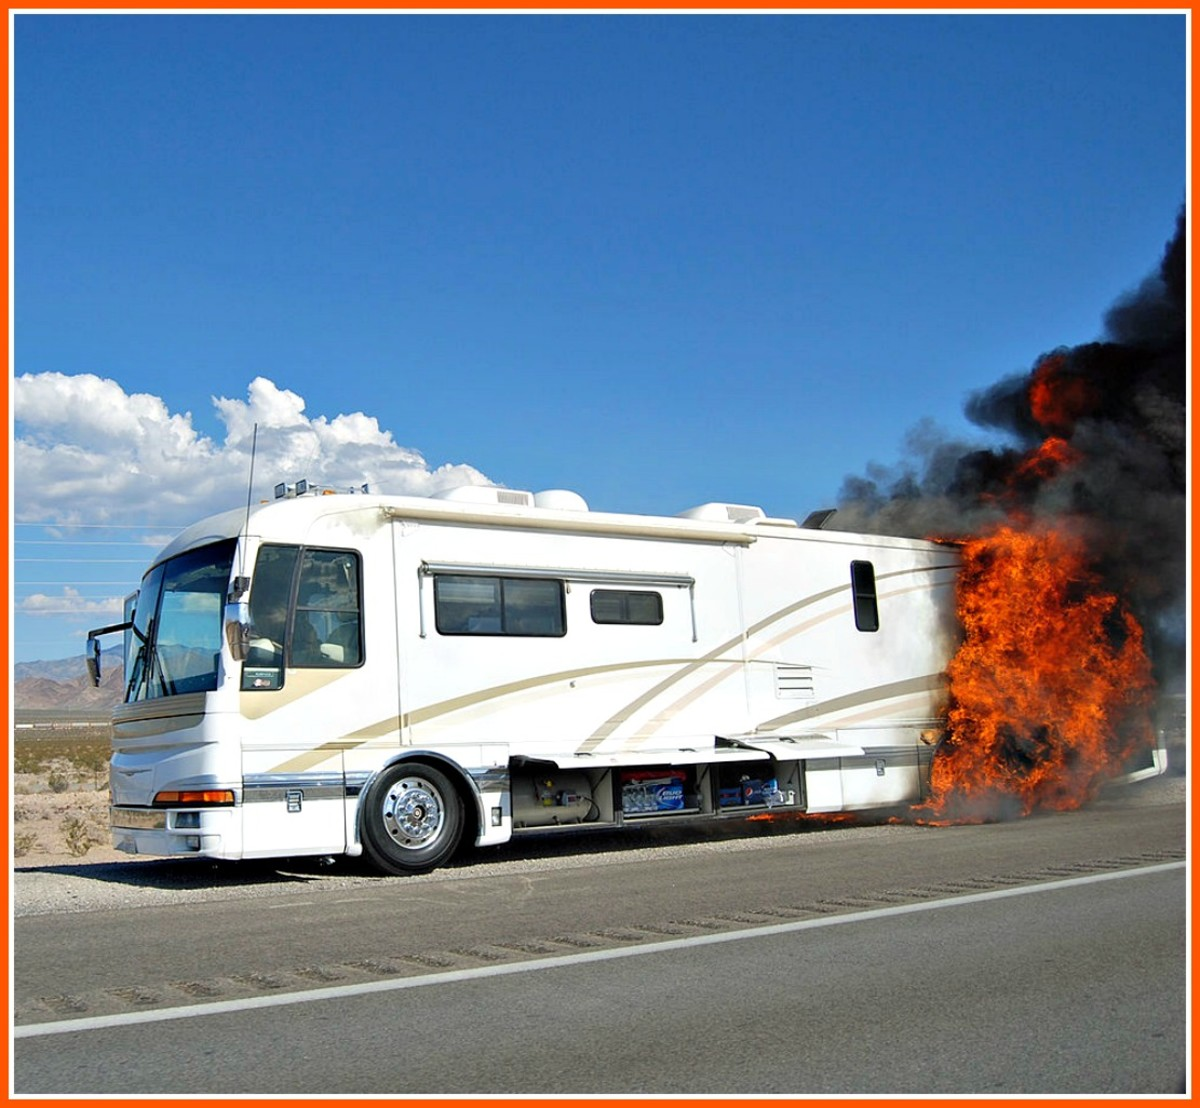 RV fires and accidents can happen at any time.  Having an evacuation plan can save your life.